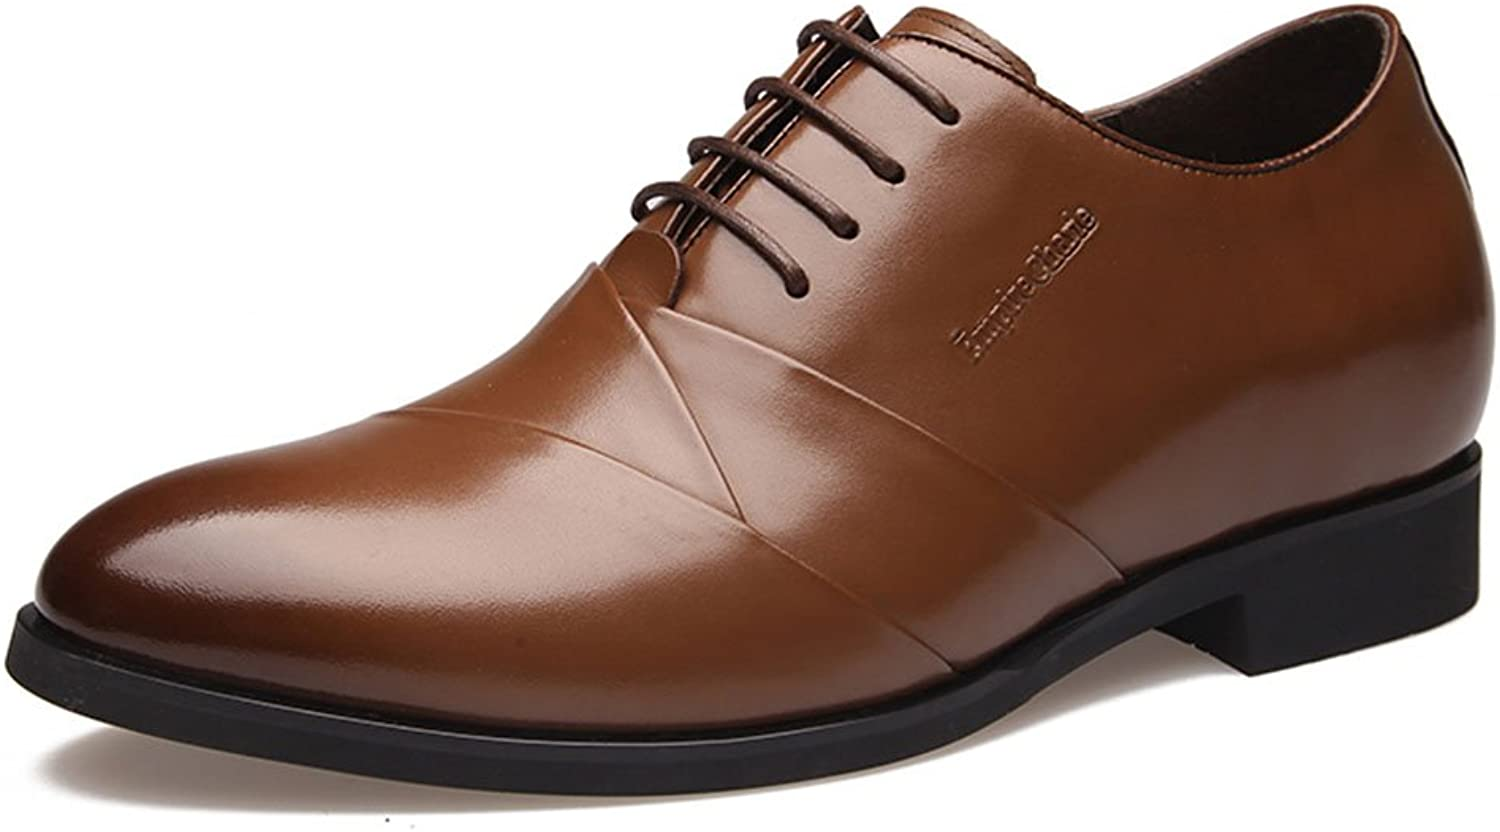 SN Men's Invisible Elevator shoes Height Increasing 2.36 Inch Business Formal Genuine Leather Oxfords shoes